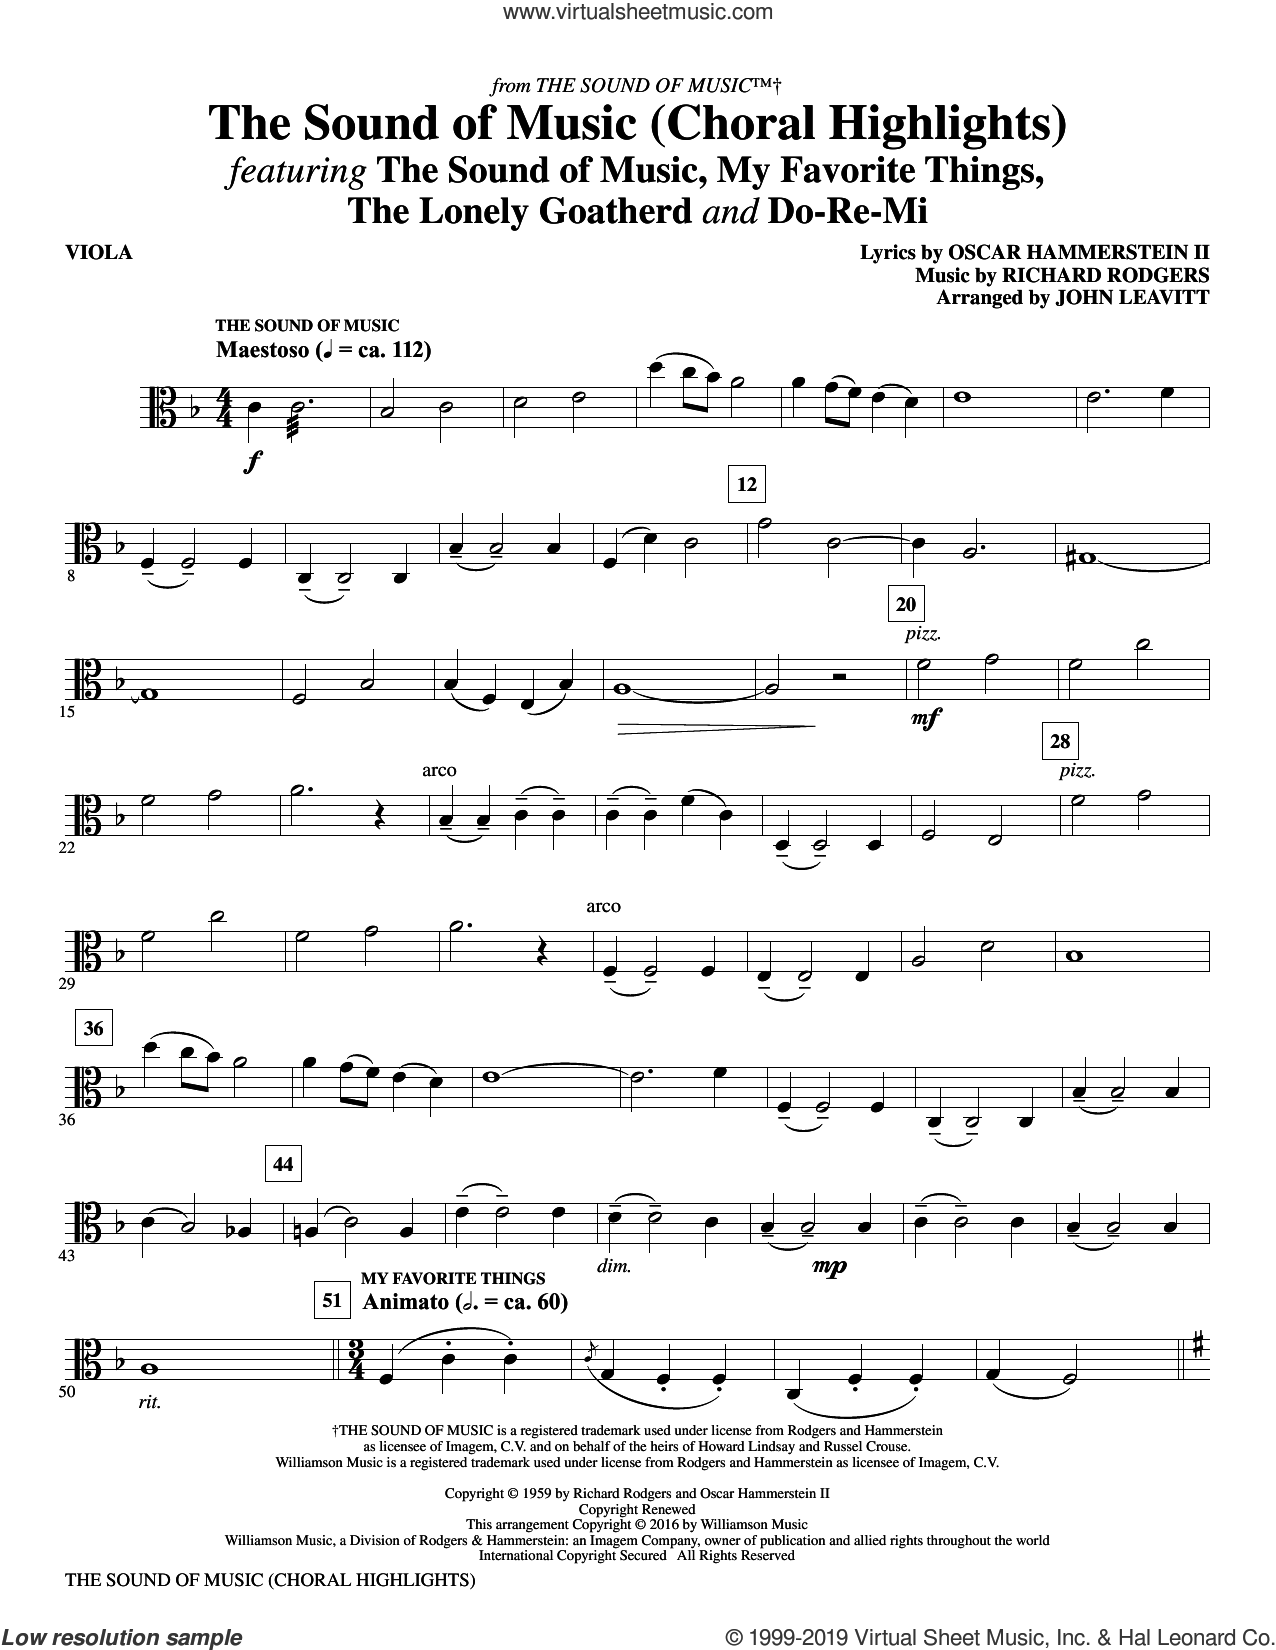 The Sound Of Music (Choral Highlights) (arr. John Leavitt) sheet music for orchestra/band (viola) by Rodgers & Hammerstein, John Leavitt, Oscar II Hammerstein and Richard Rodgers, intermediate skill level